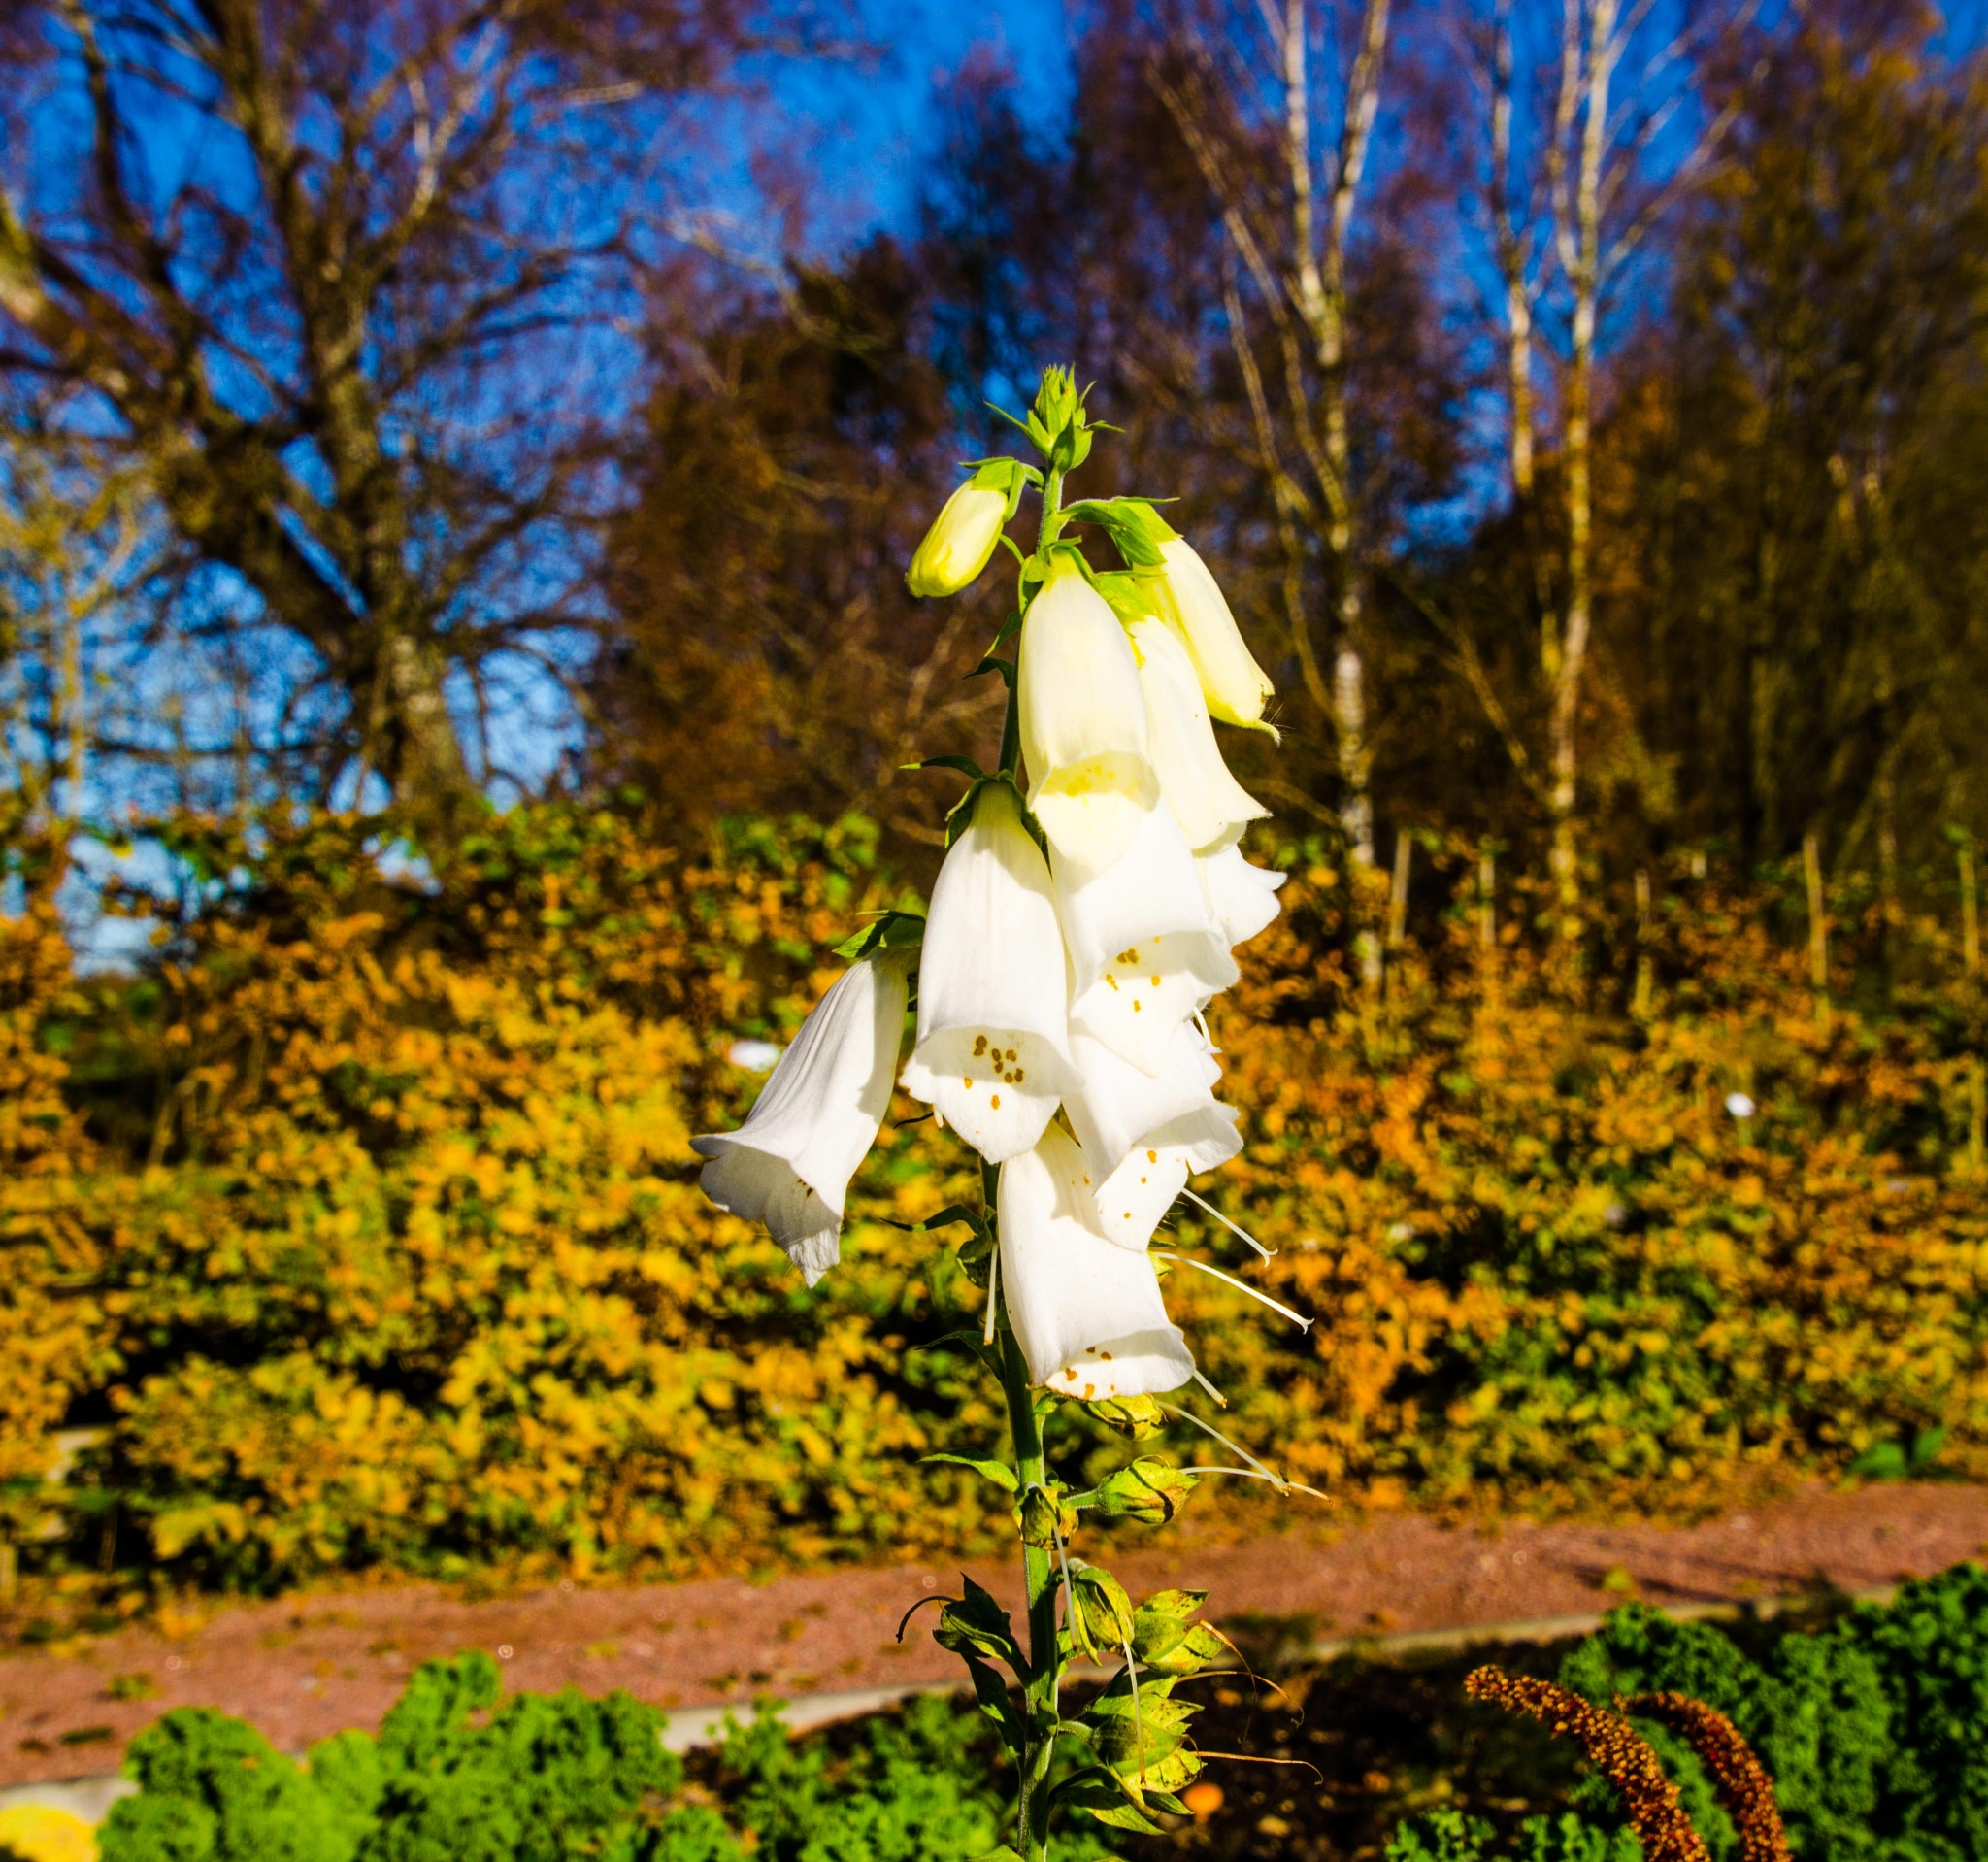 Flowers in beautiful autumn weather by Johnny Lythell